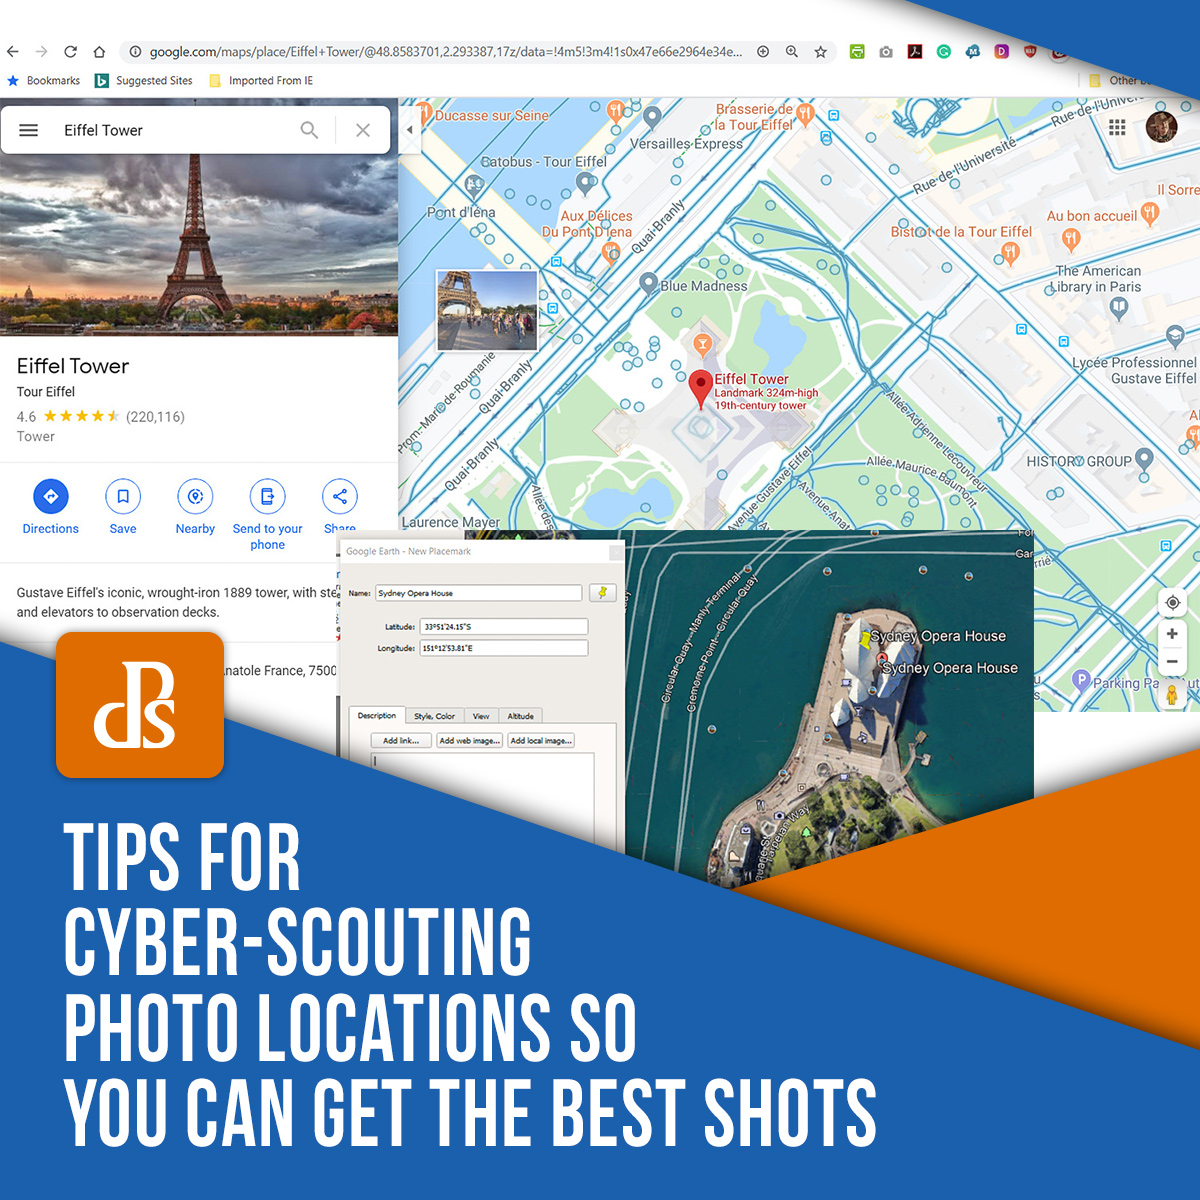 tips-for-cyber-scouting-photo-locations